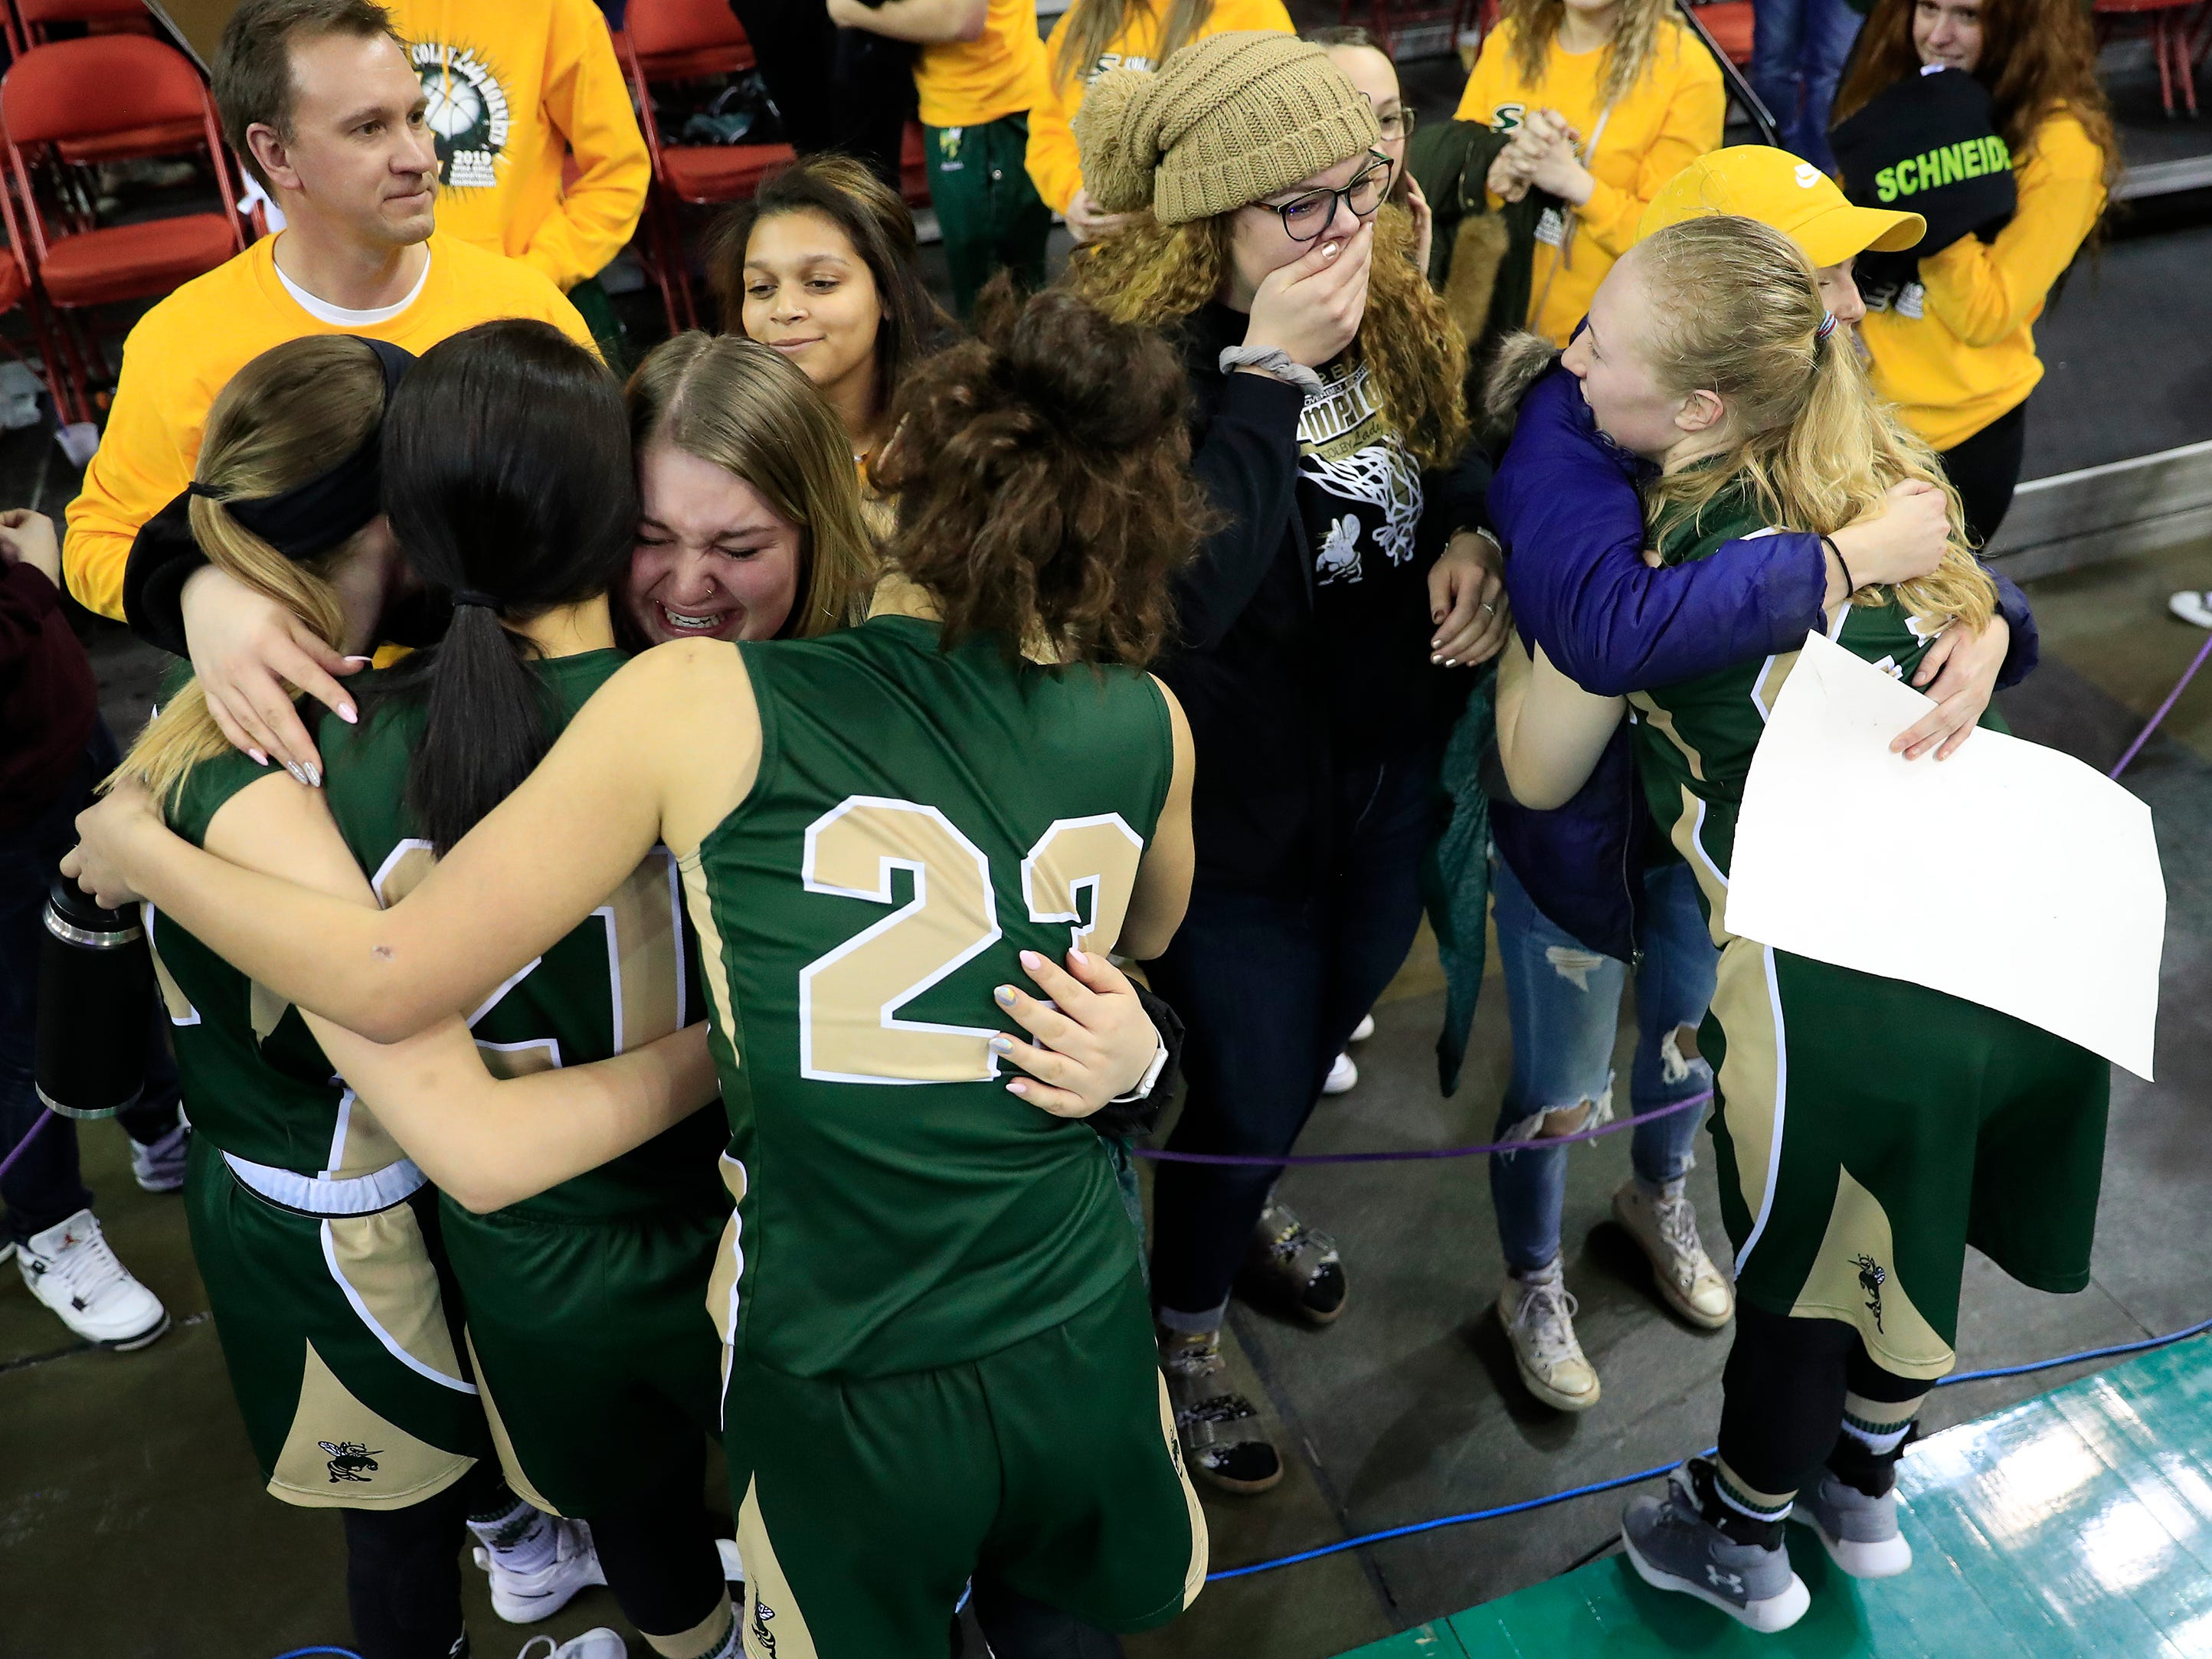 Colby players hug their supporters after losing to Melrose-Mindoro in a Division 3 semifinal at the WIAA state girls basketball tournament at the Resch Center on Thursday, March 7, 2019, in Ashwaubenon, Wis.